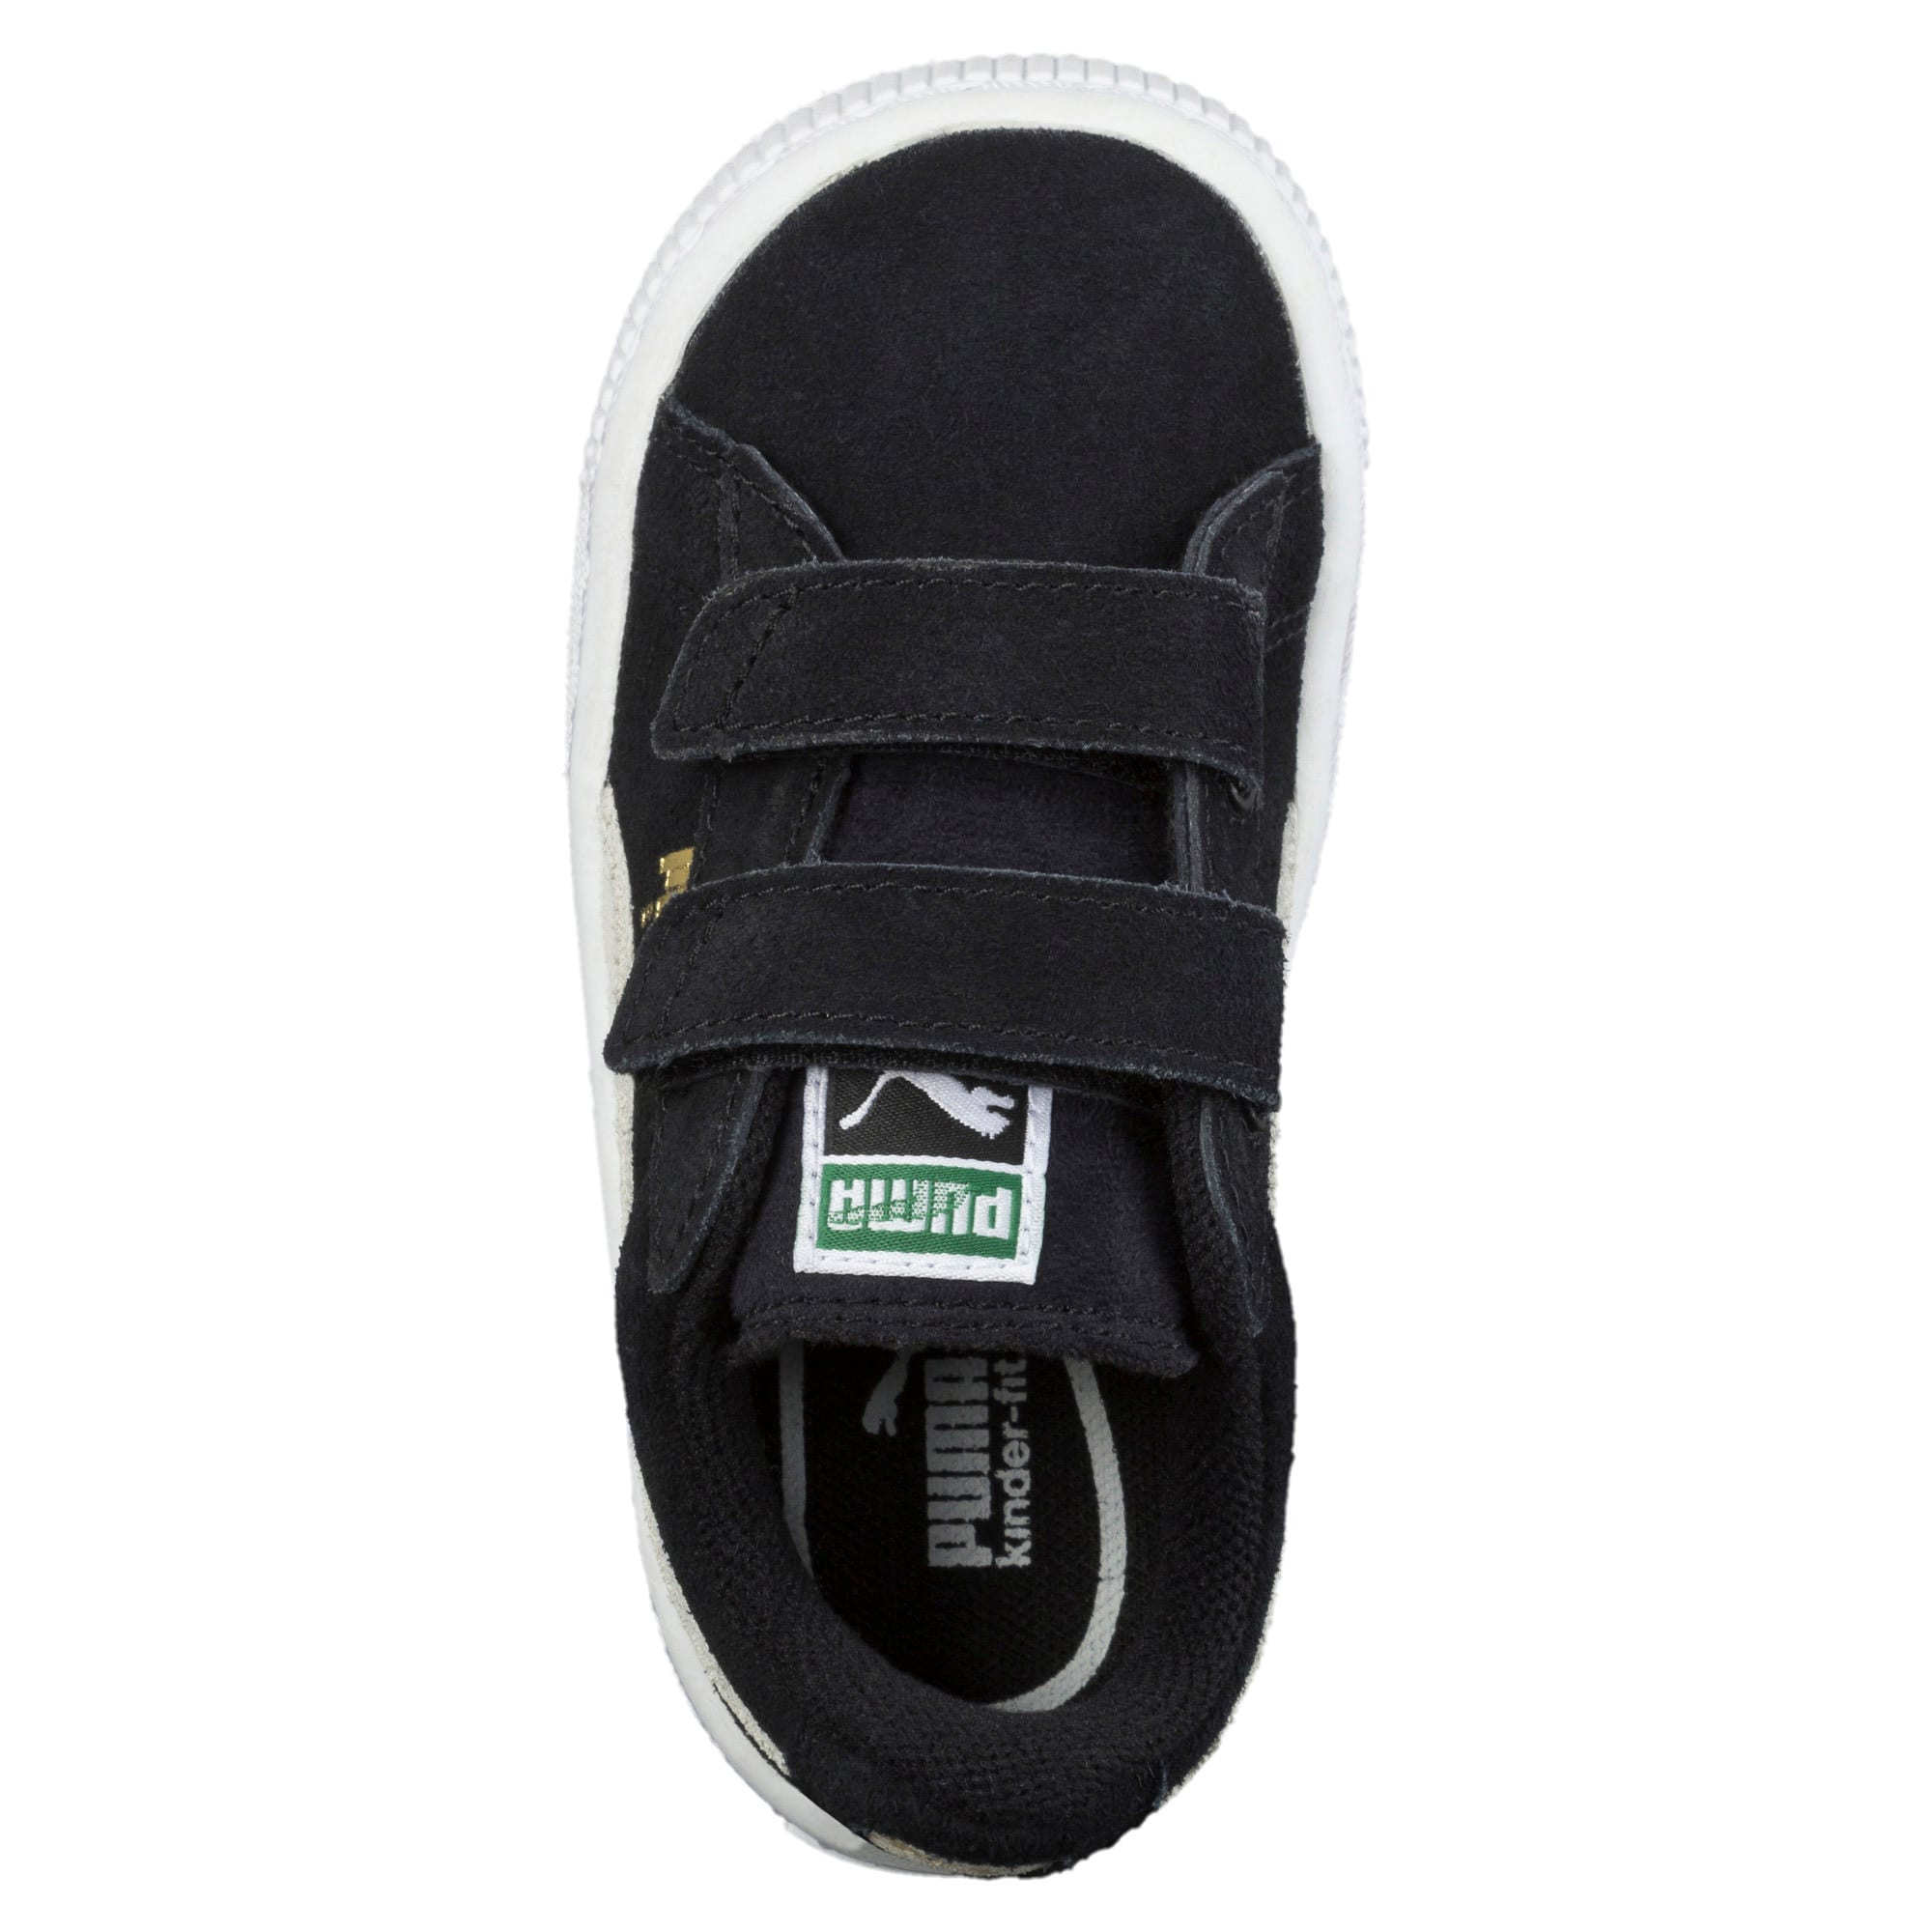 Thumbnail 5 of Suede sneakers voor kinderen, Puma Black-Puma White, medium